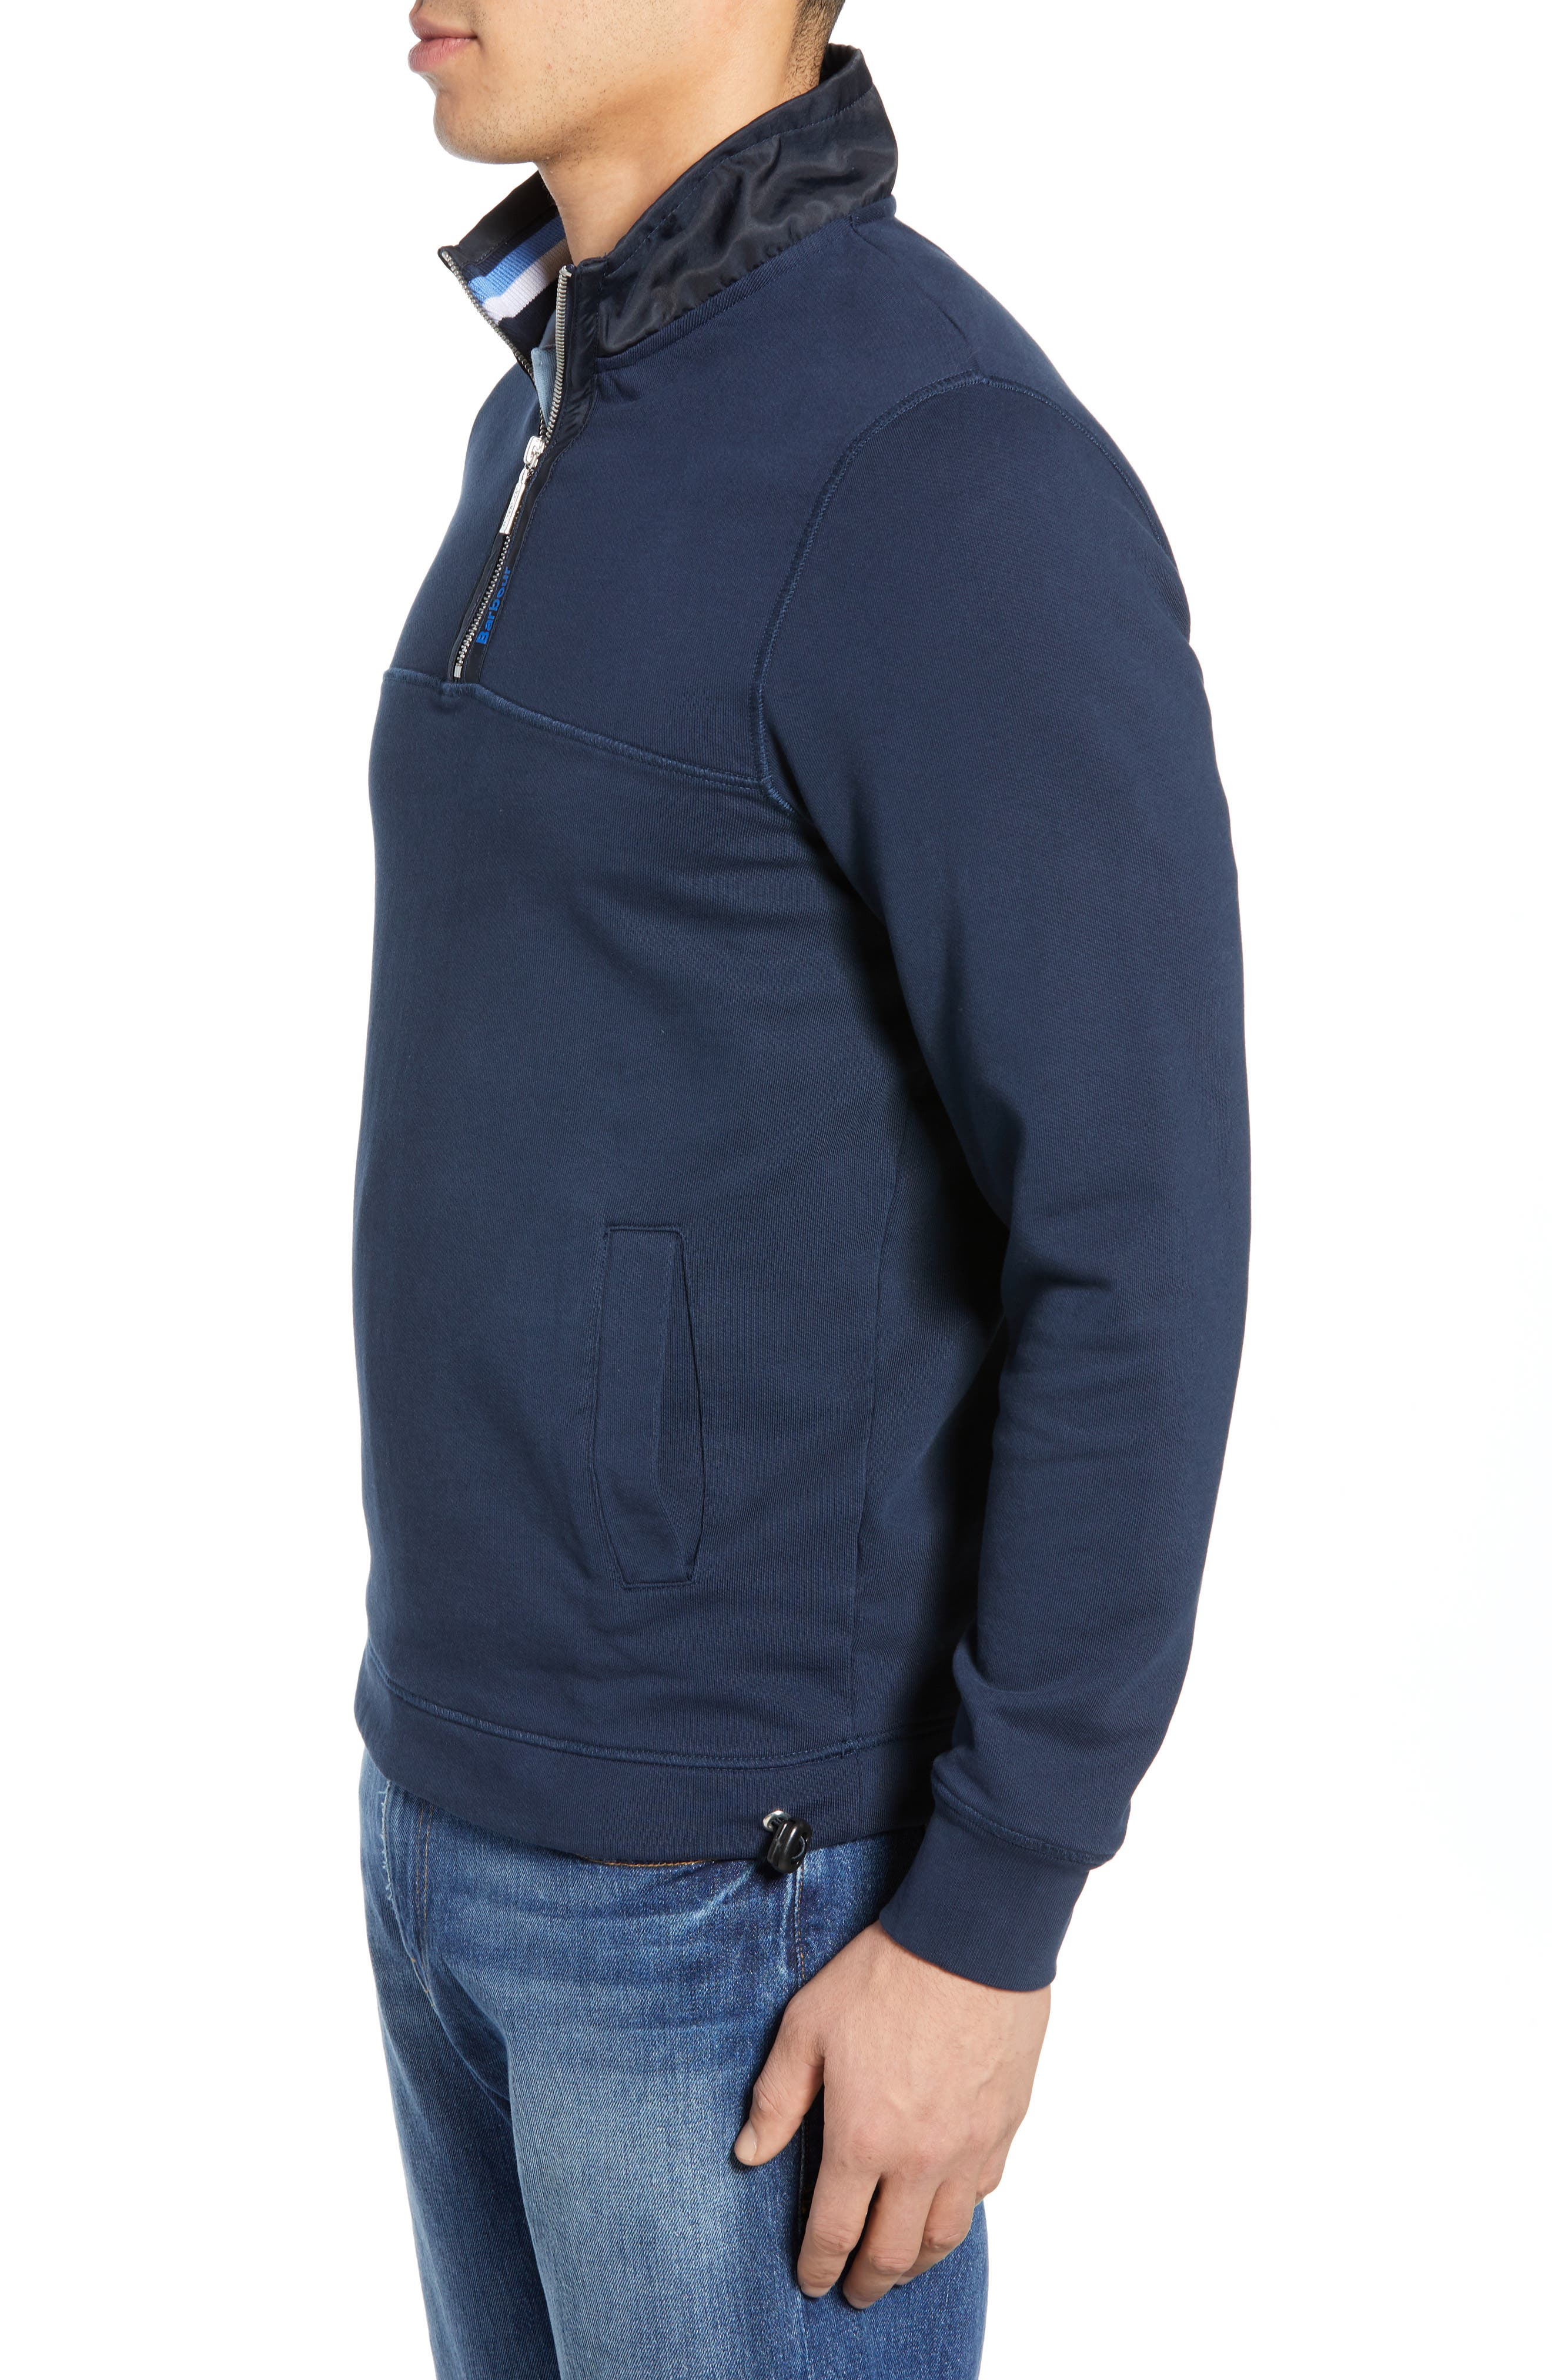 BARBOUR, Seward Half Zip Pullover, Alternate thumbnail 4, color, NAVY